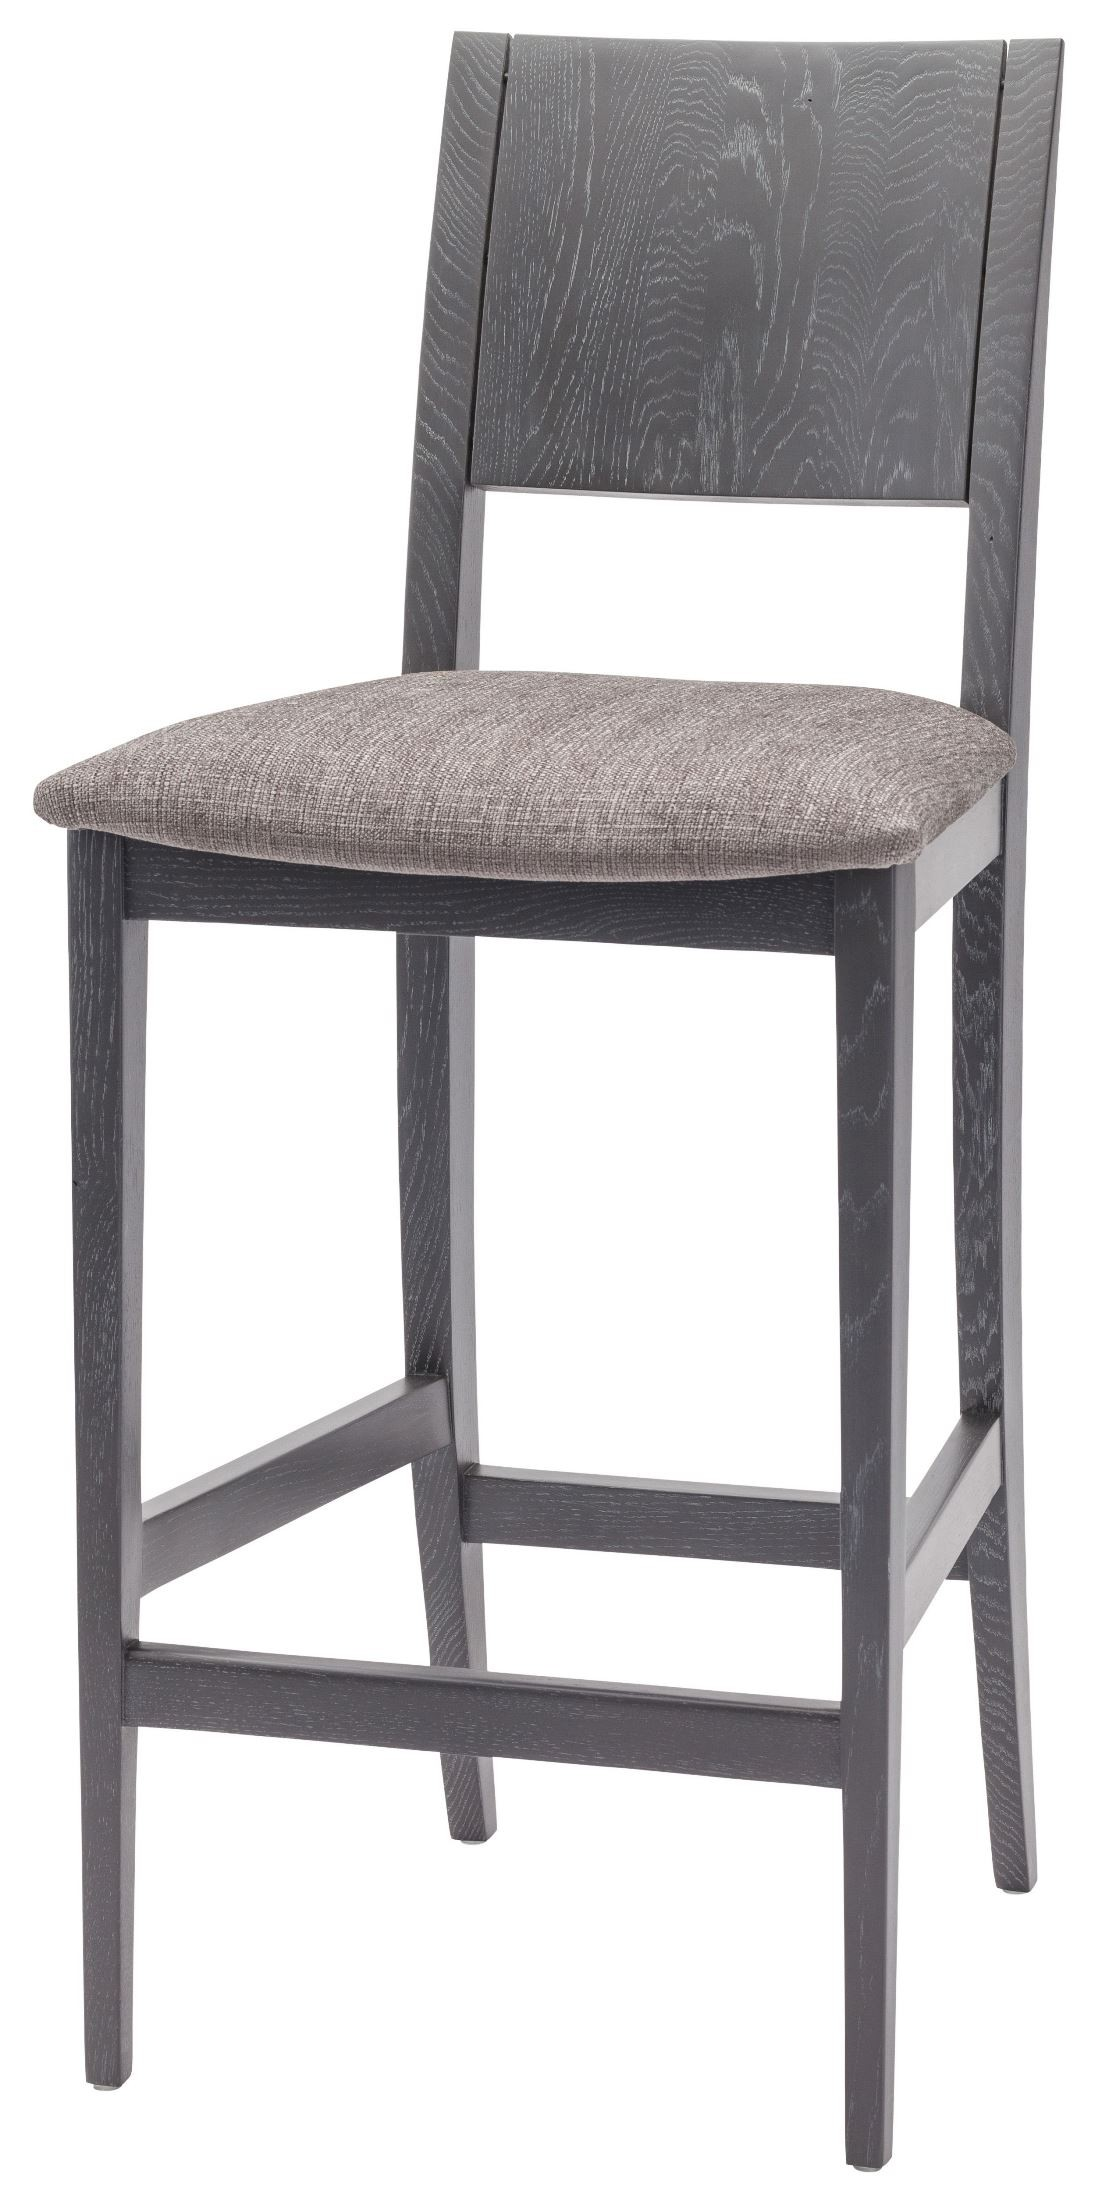 Eska Dark Grey Fabric Counter Stool from Nuevo Coleman  : hgsr576hr from colemanfurniture.com size 1098 x 2200 jpeg 296kB